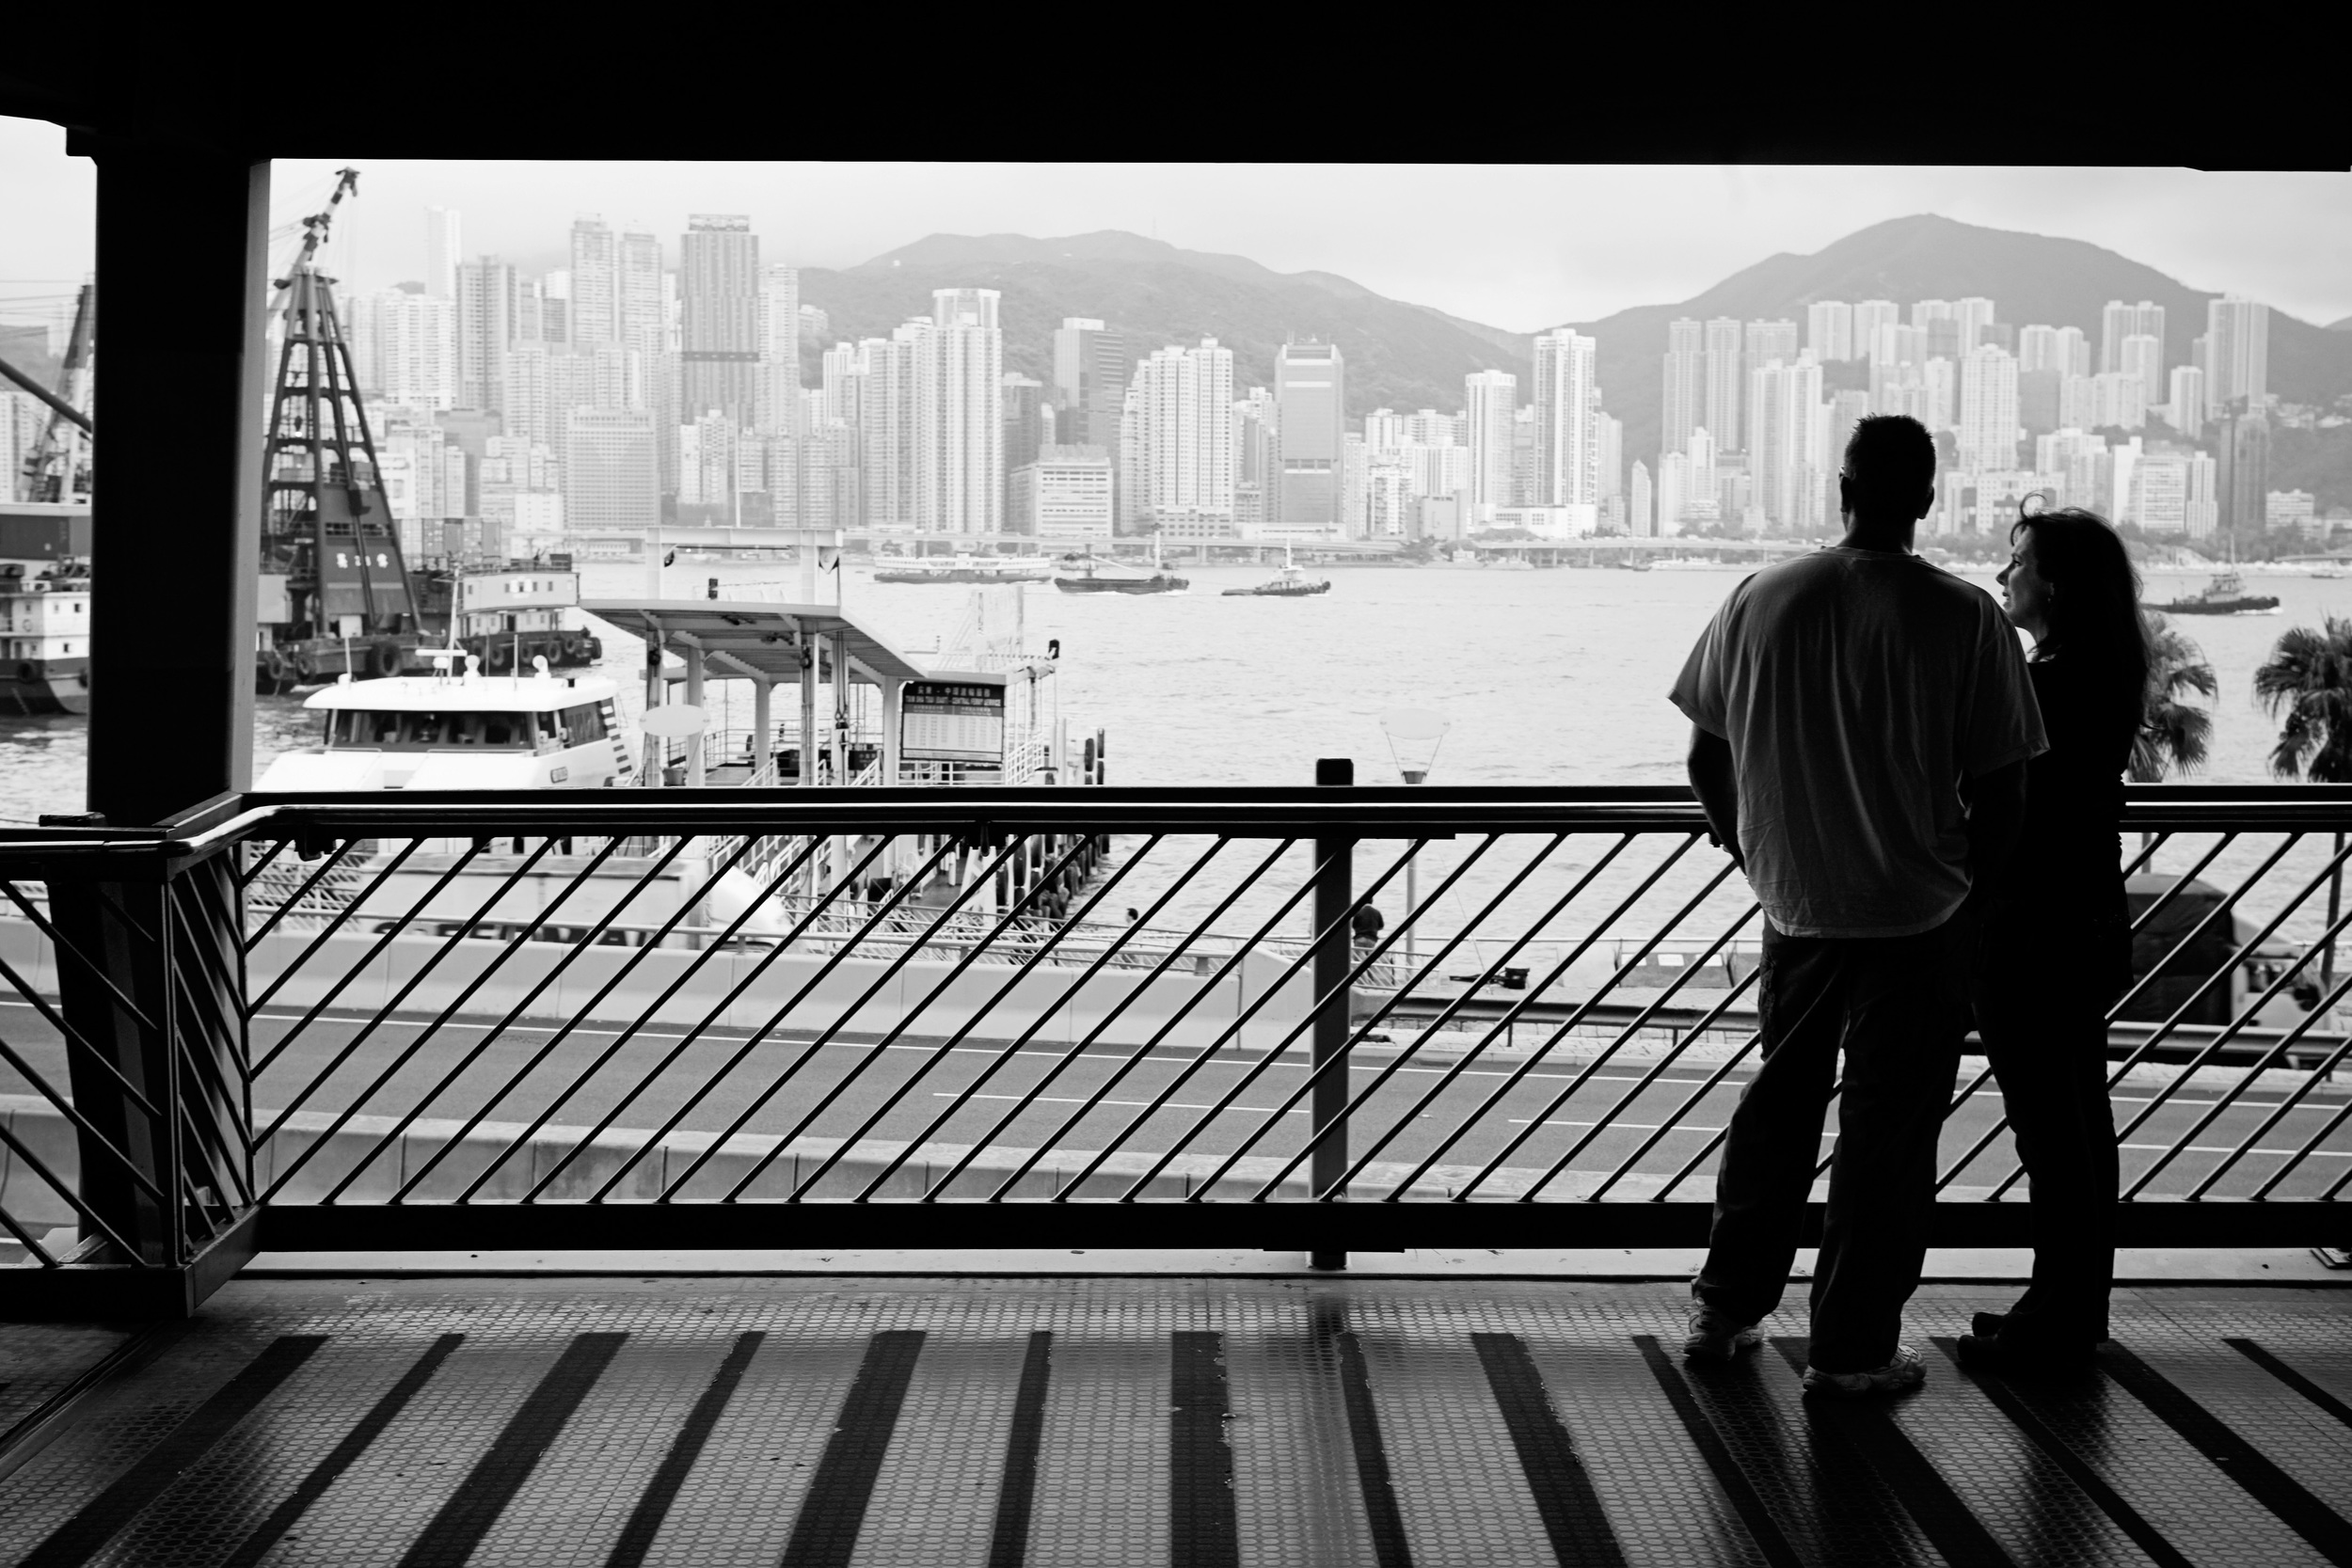 Karen and Bob share a quiet moment by the Hong Kong waterfront. The next day is Karen's 50th birthday, and they will fly to Nanchang, China to meet their daughter for the first time.